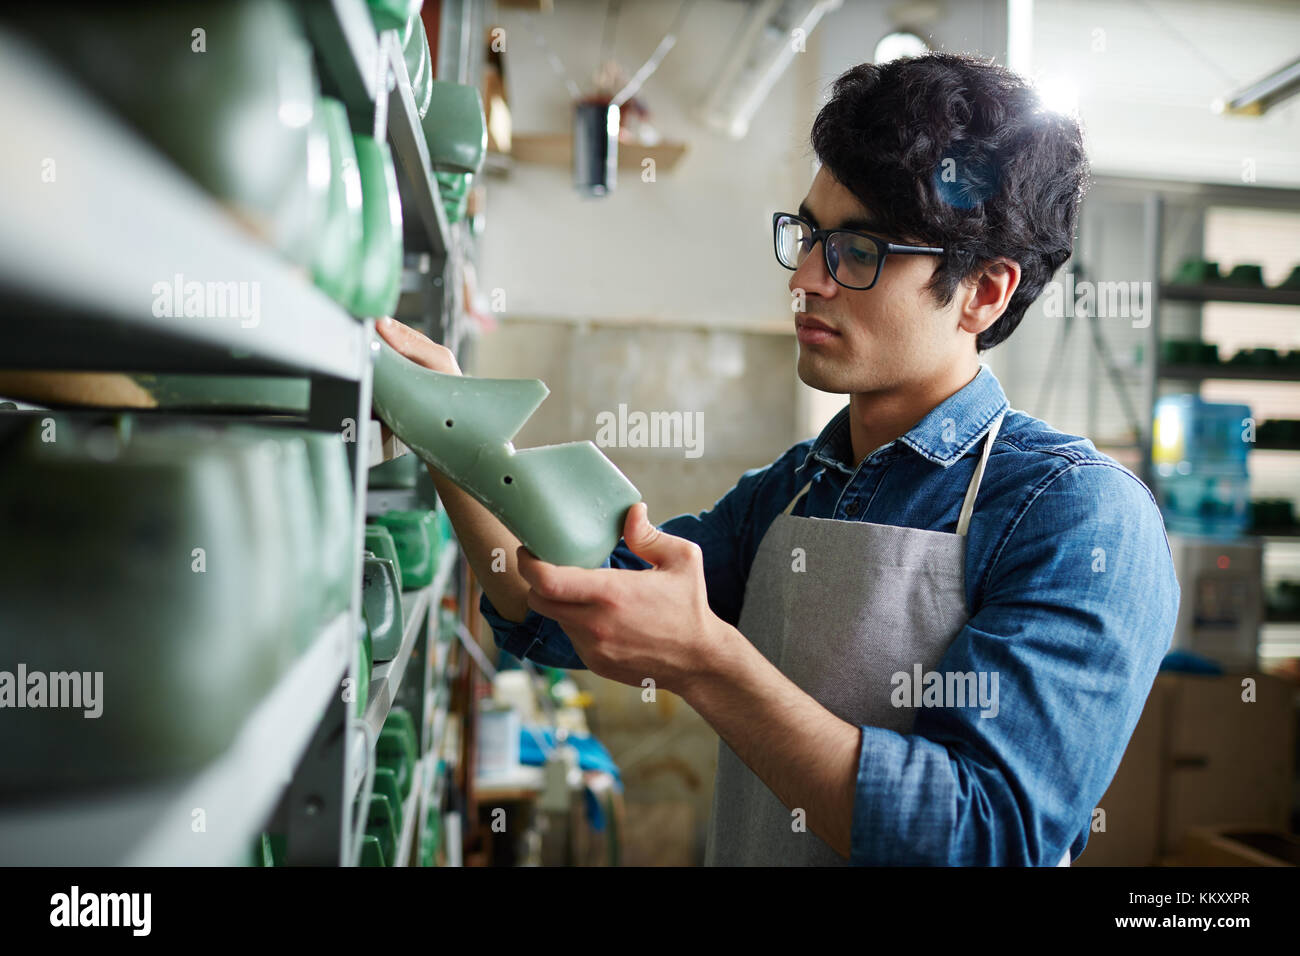 Young shoemaker taking one of footwear workpieces from shelf - Stock Image